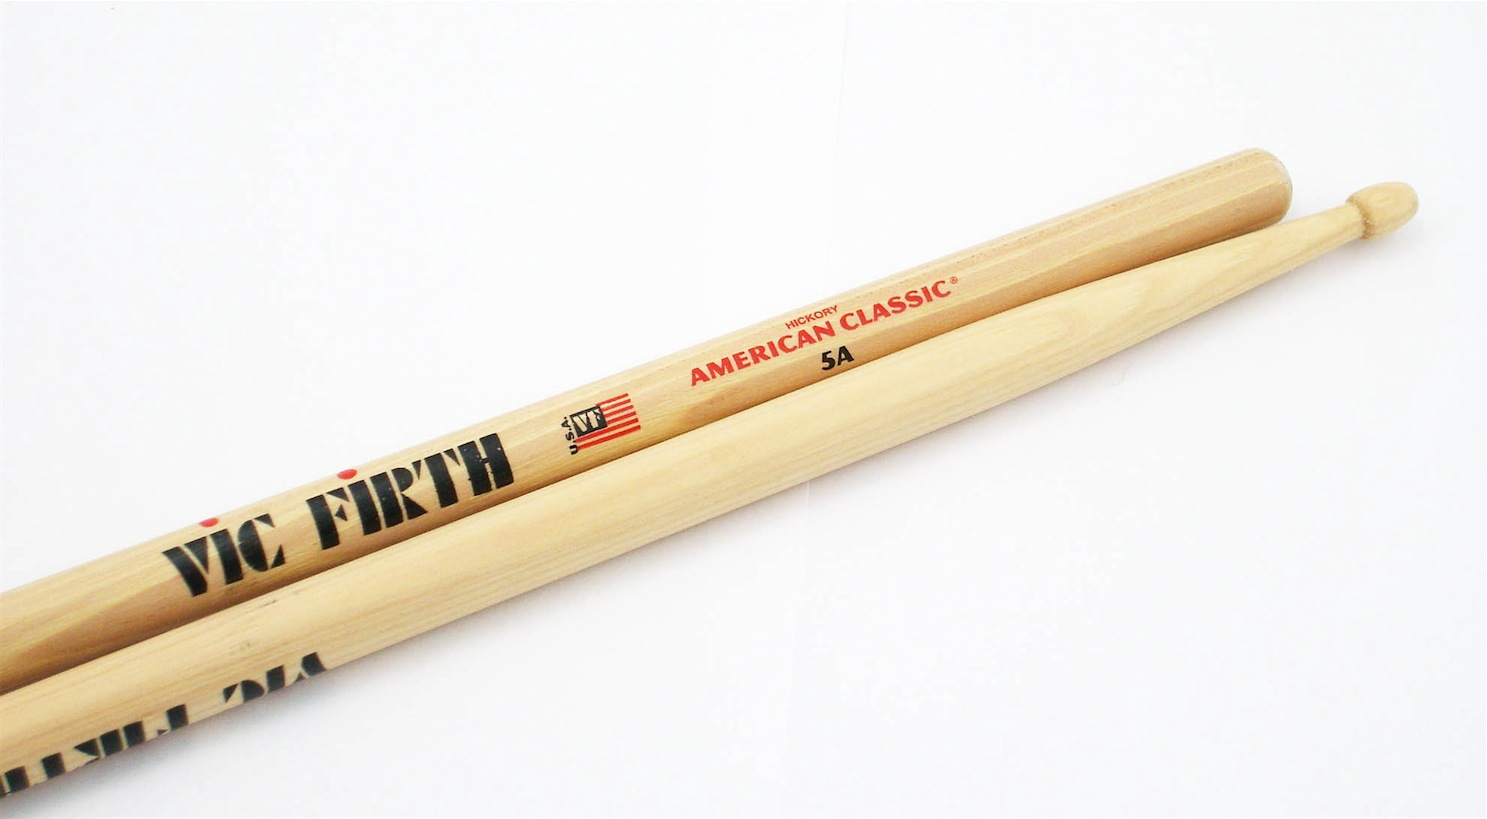 sticks vic firth american classic hickory 5a. Black Bedroom Furniture Sets. Home Design Ideas